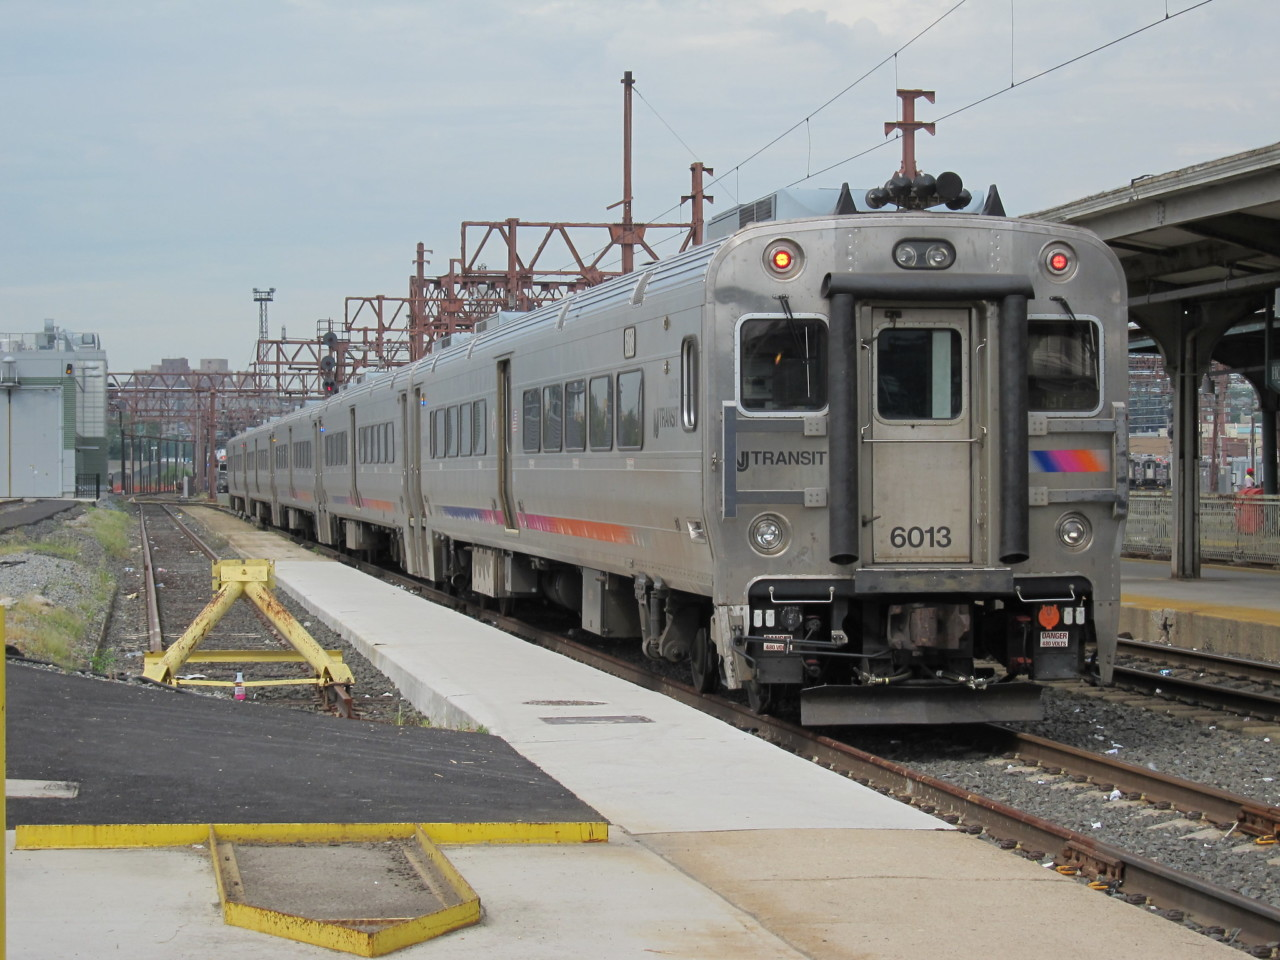 NJT train in the station